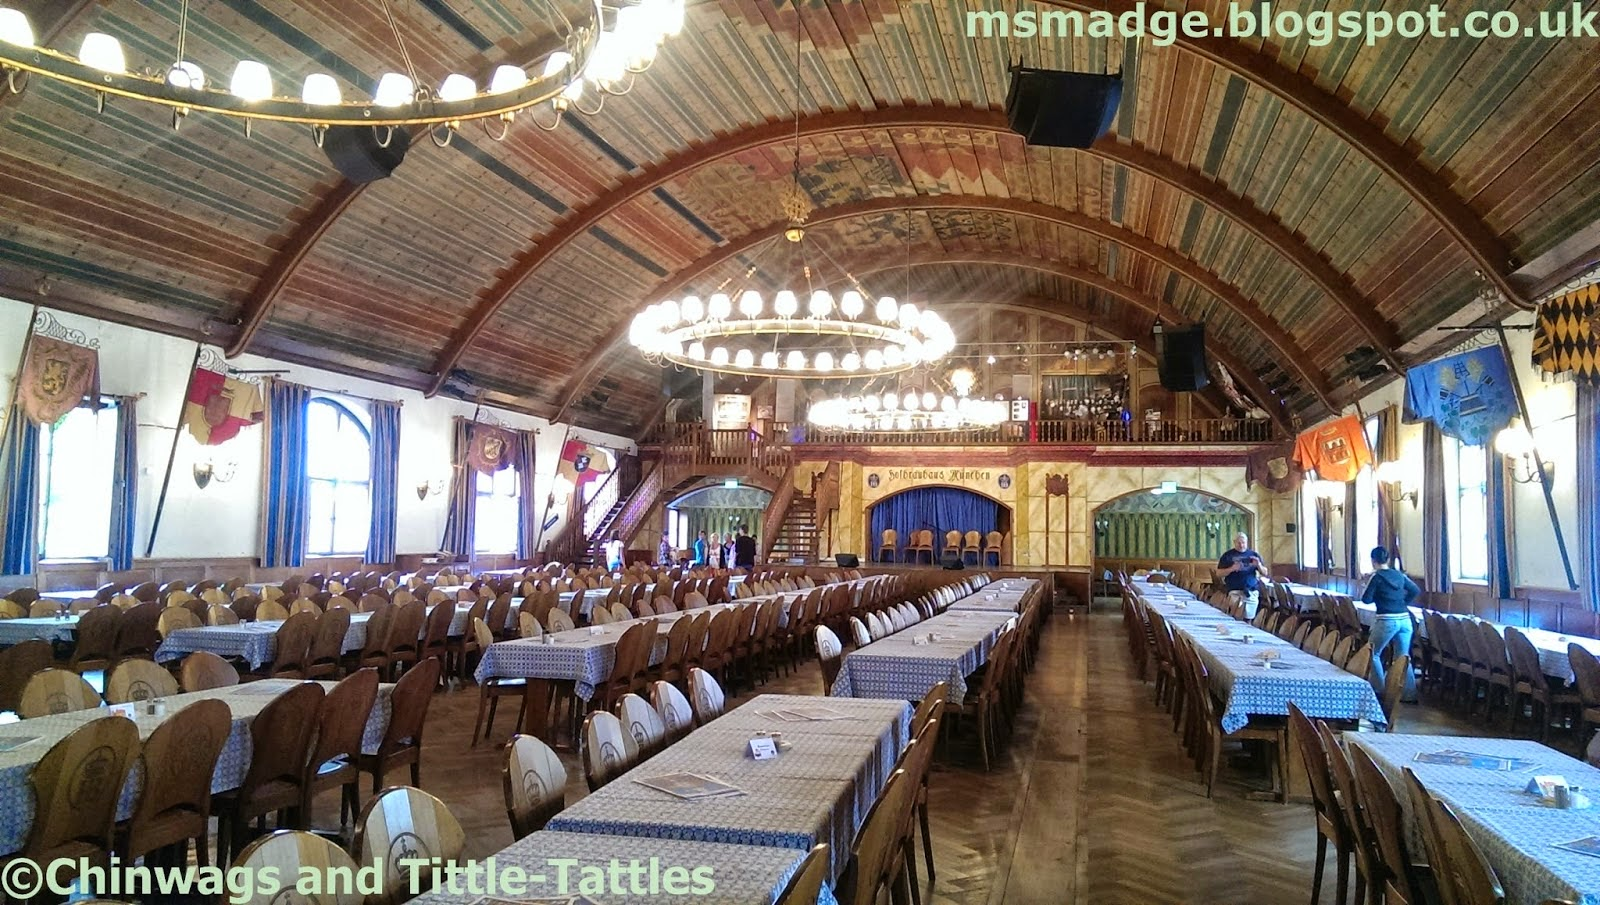 http://msmadge.blogspot.co.uk/2014/09/a-taste-of-bavaria.html